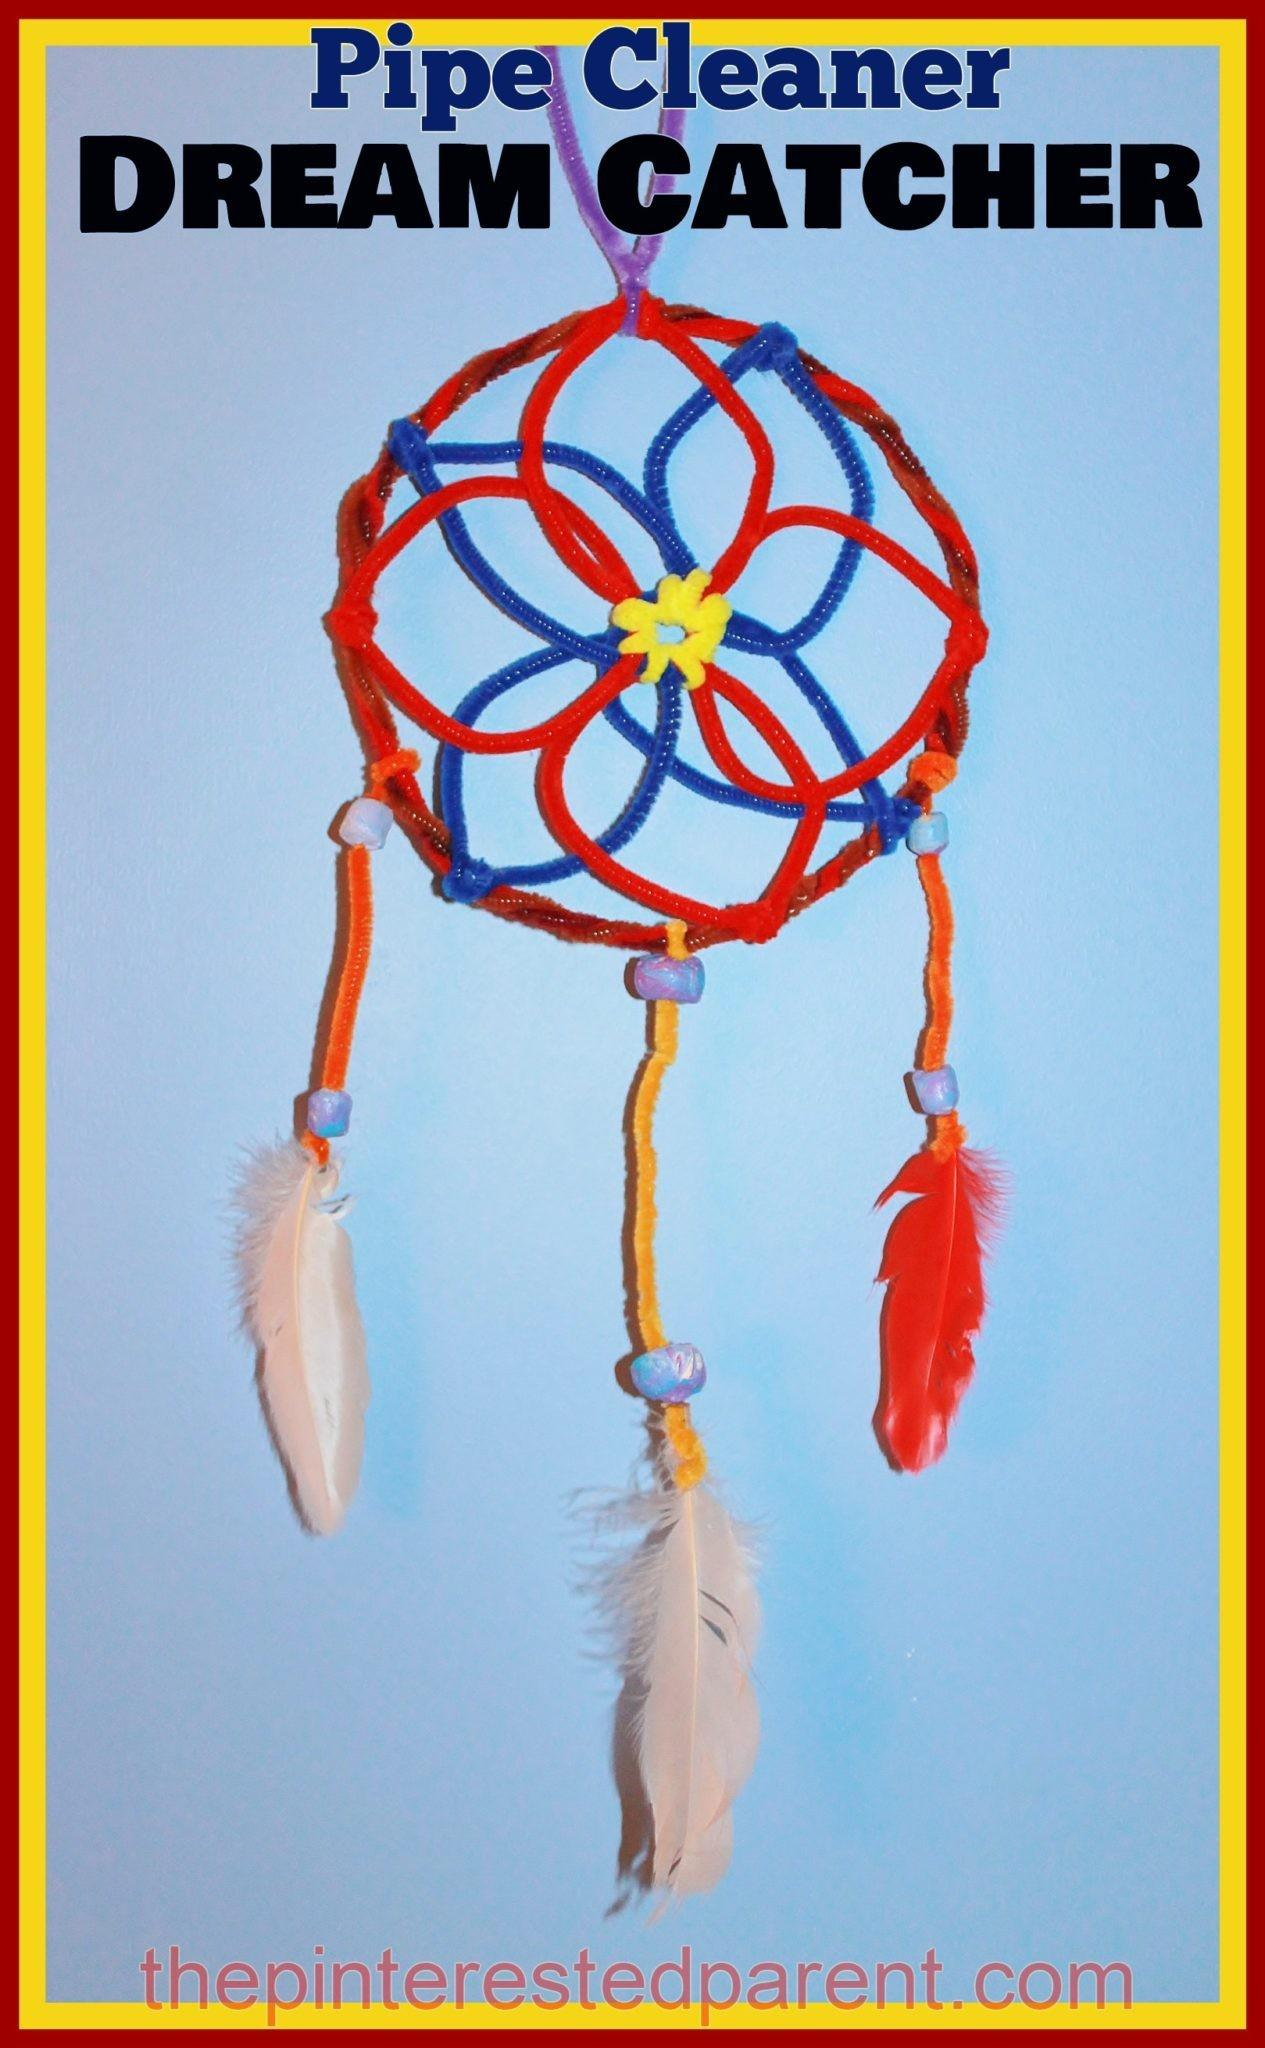 Pipe Cleaner Dream Catcher Pinterested Parent